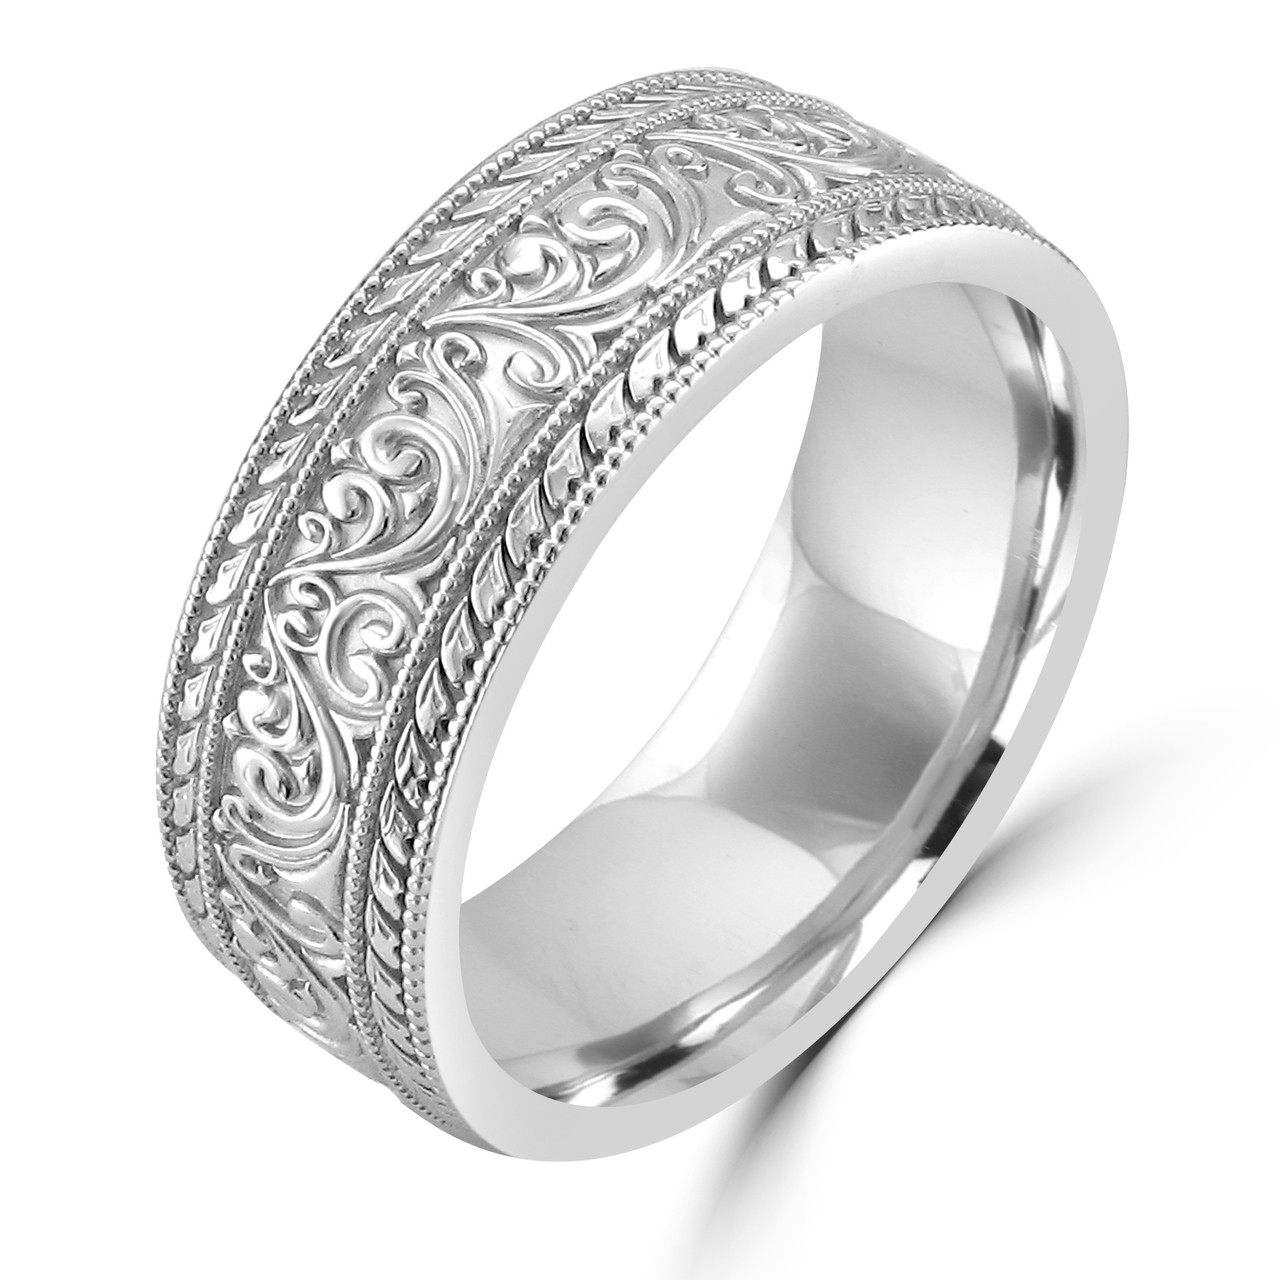 White Gold Wedding Band.14k White Gold Unique Art Nouveau Carved Wedding Band